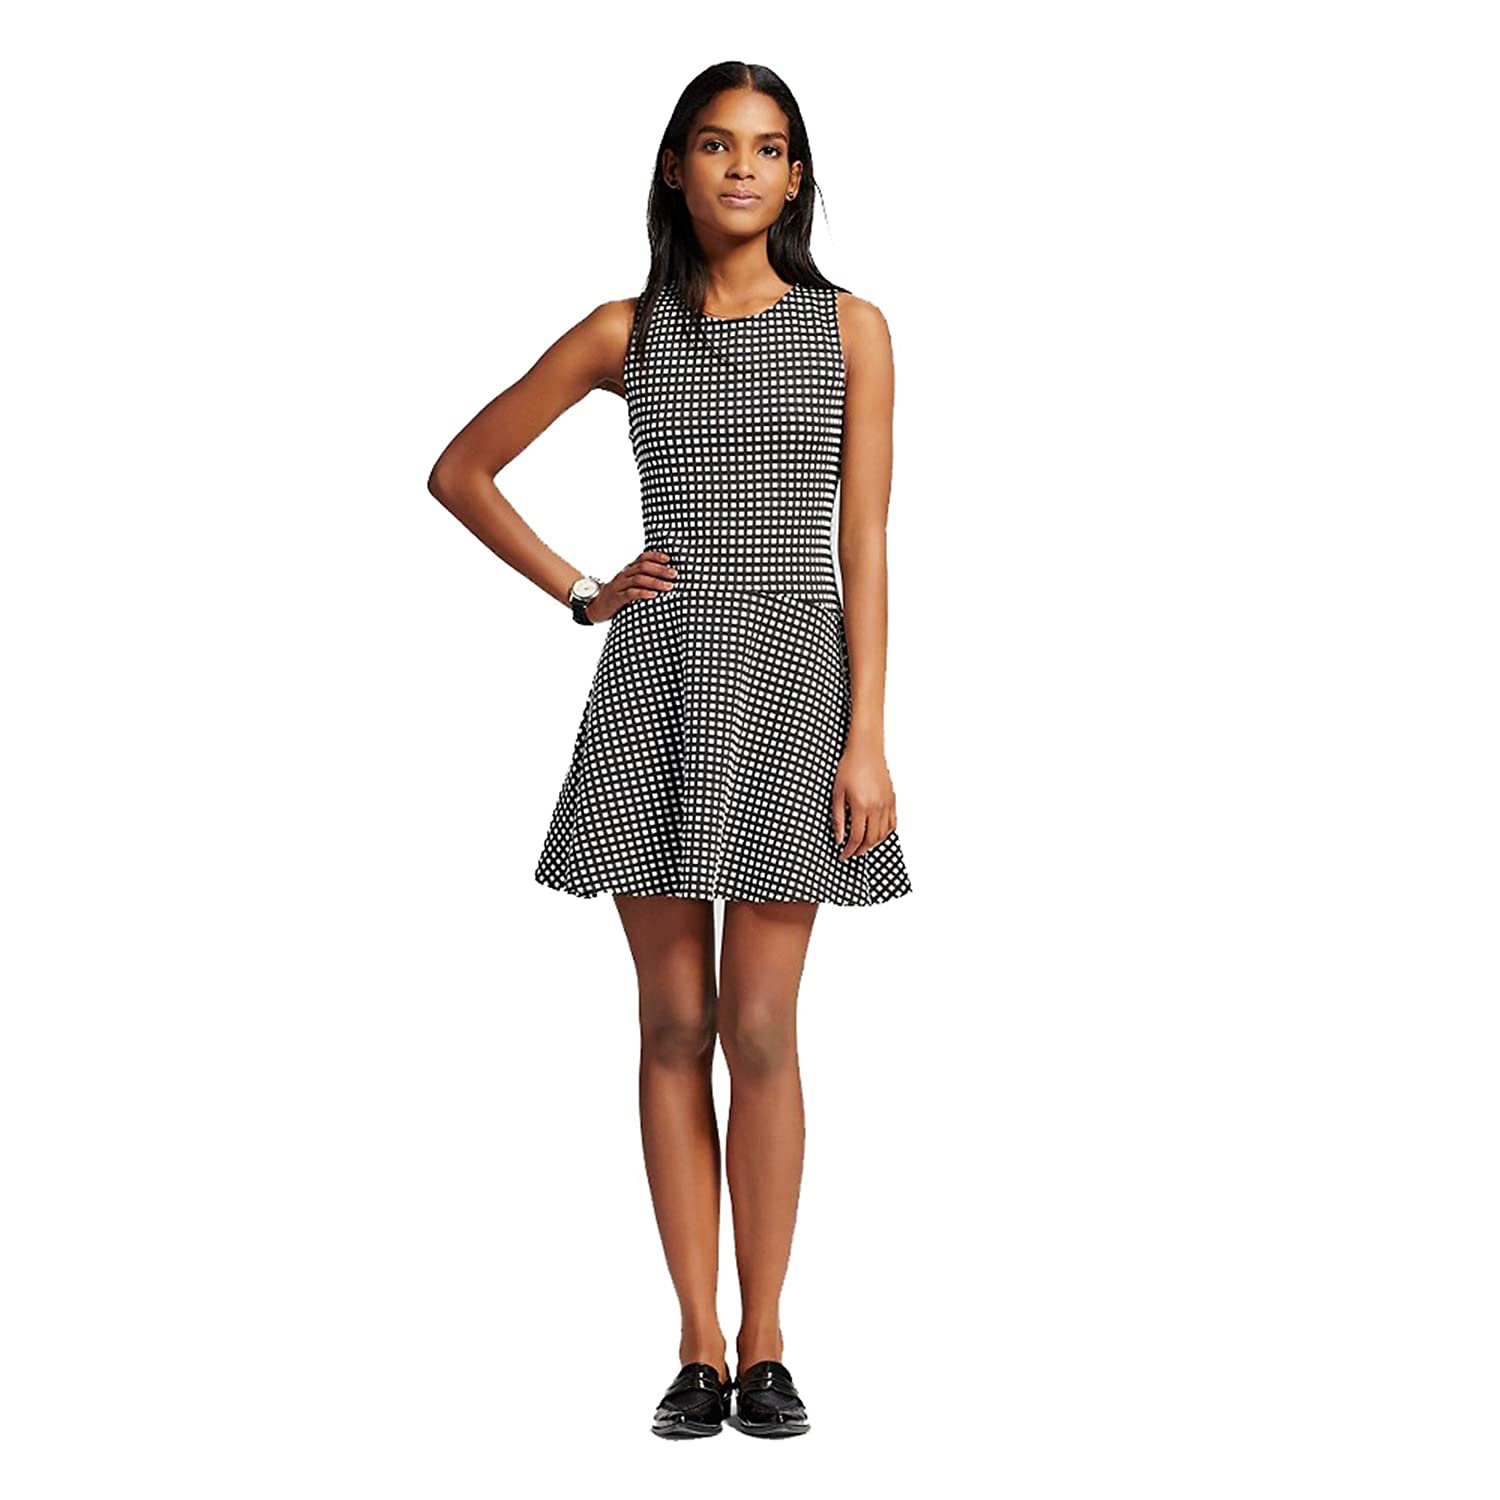 aad9fe20a3fb Shameless Women's Stretch Gingham Cross Back Dress at Amazon Women's  Clothing store: